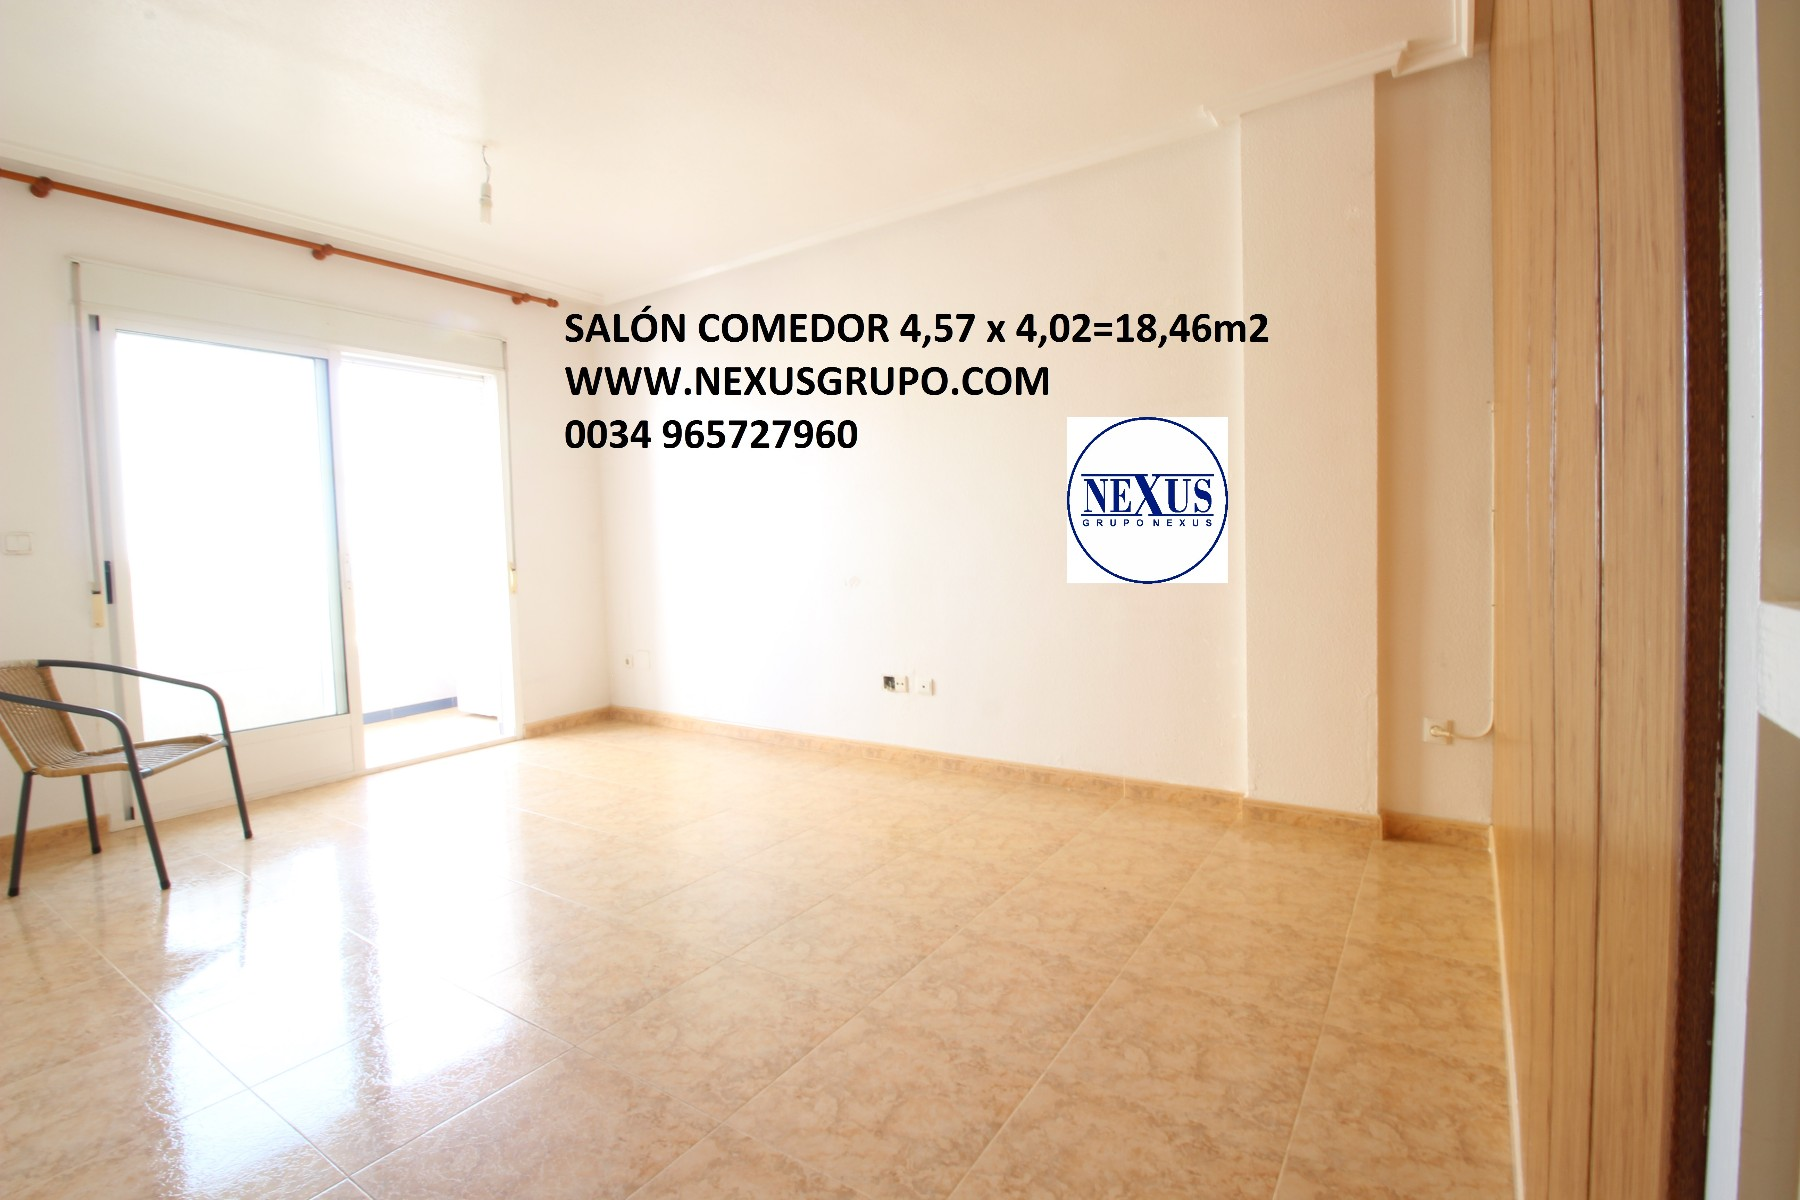 2 Slaapkamer Appartement in Zona Norte - Herverkoop in Nexus Grupo